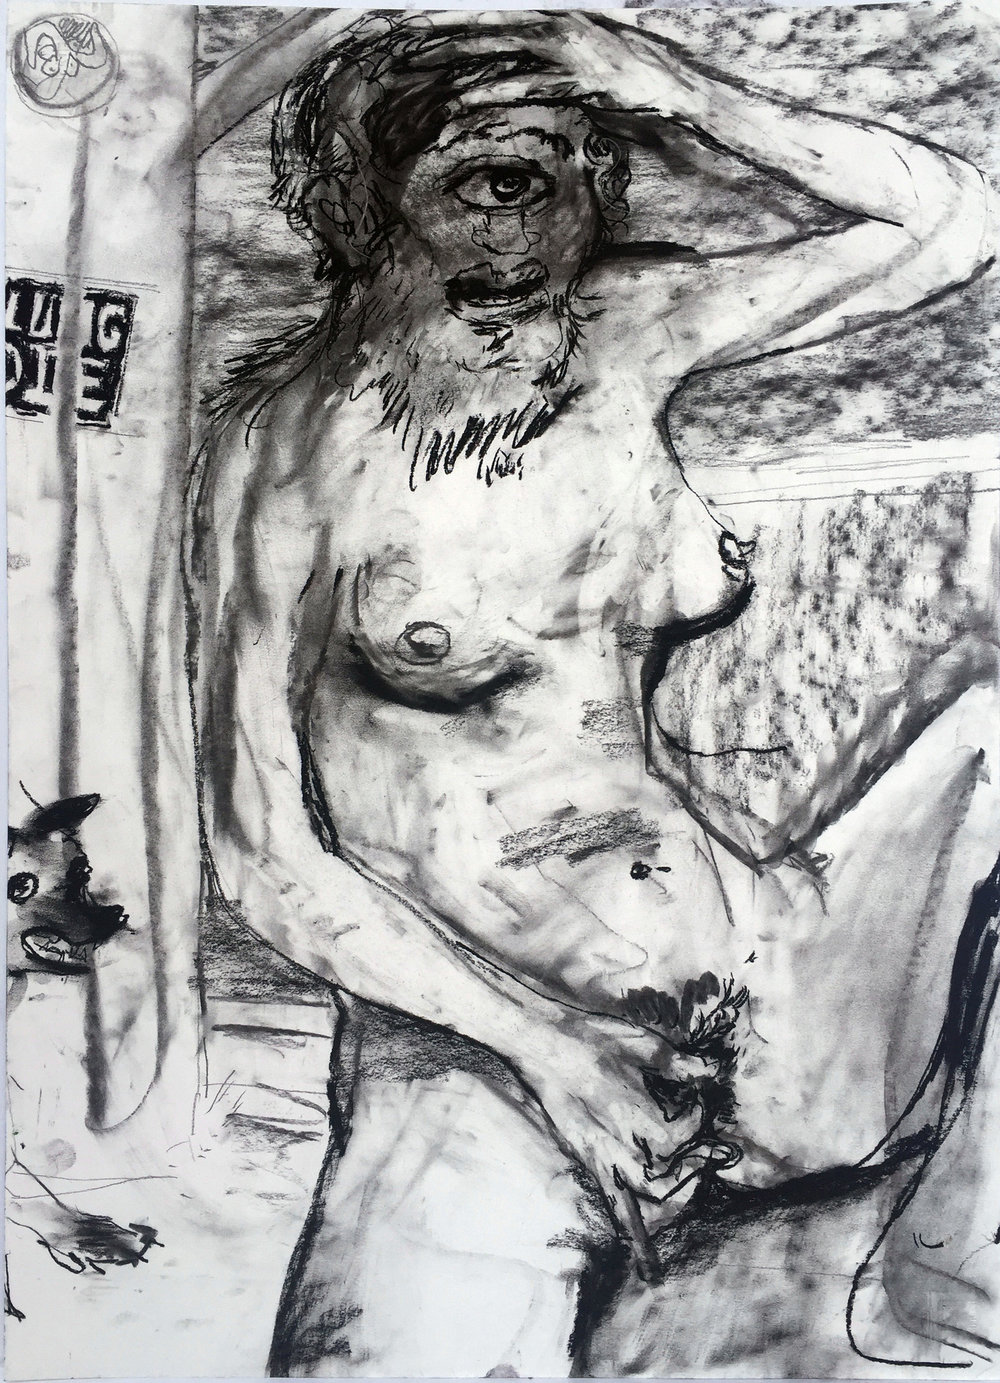 Cyclopes 18 by 24 inches charcoal on paper 2017.jpg